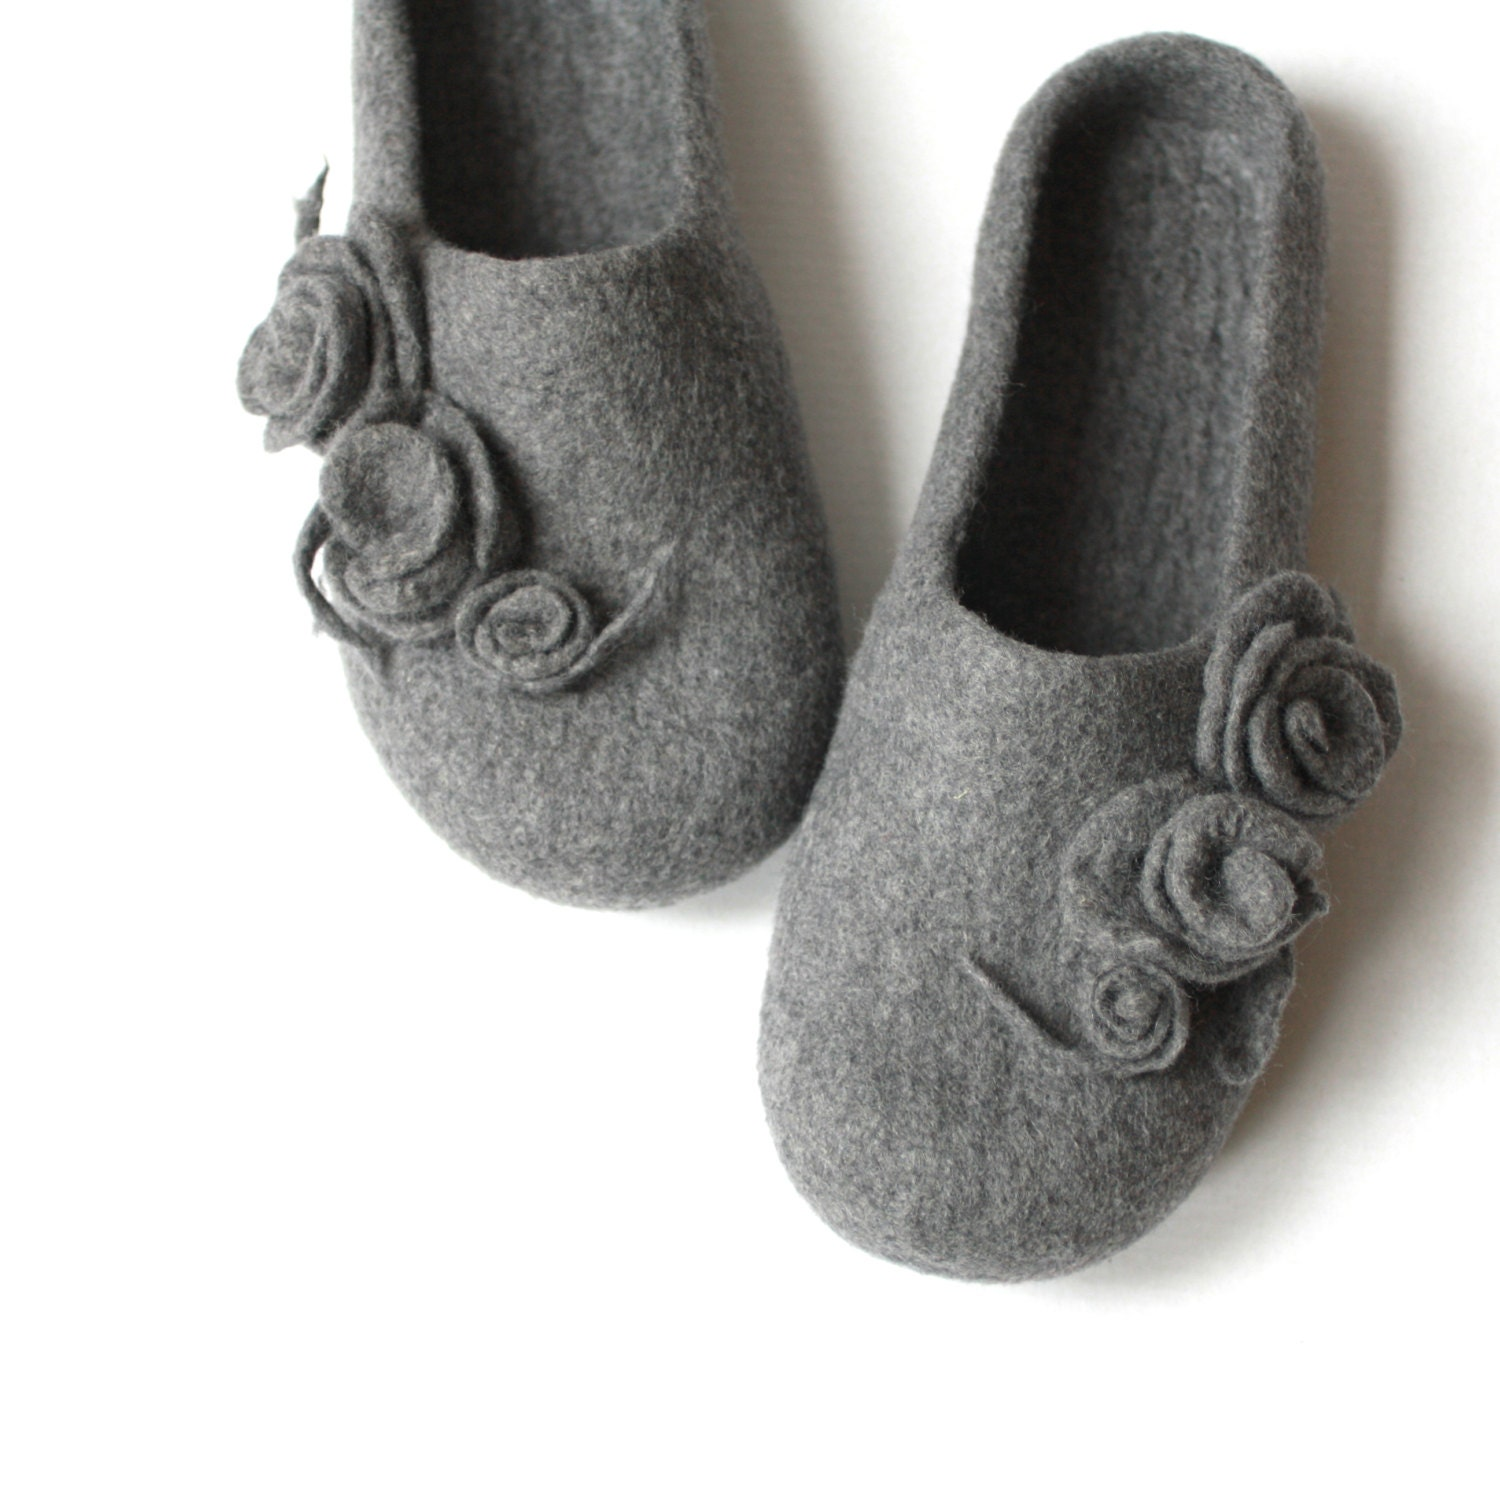 reviews stylish keeping give even when of and bedroom under about clean ugg womens practical way a guide women the are lounging best house soft feet simply slippers you your